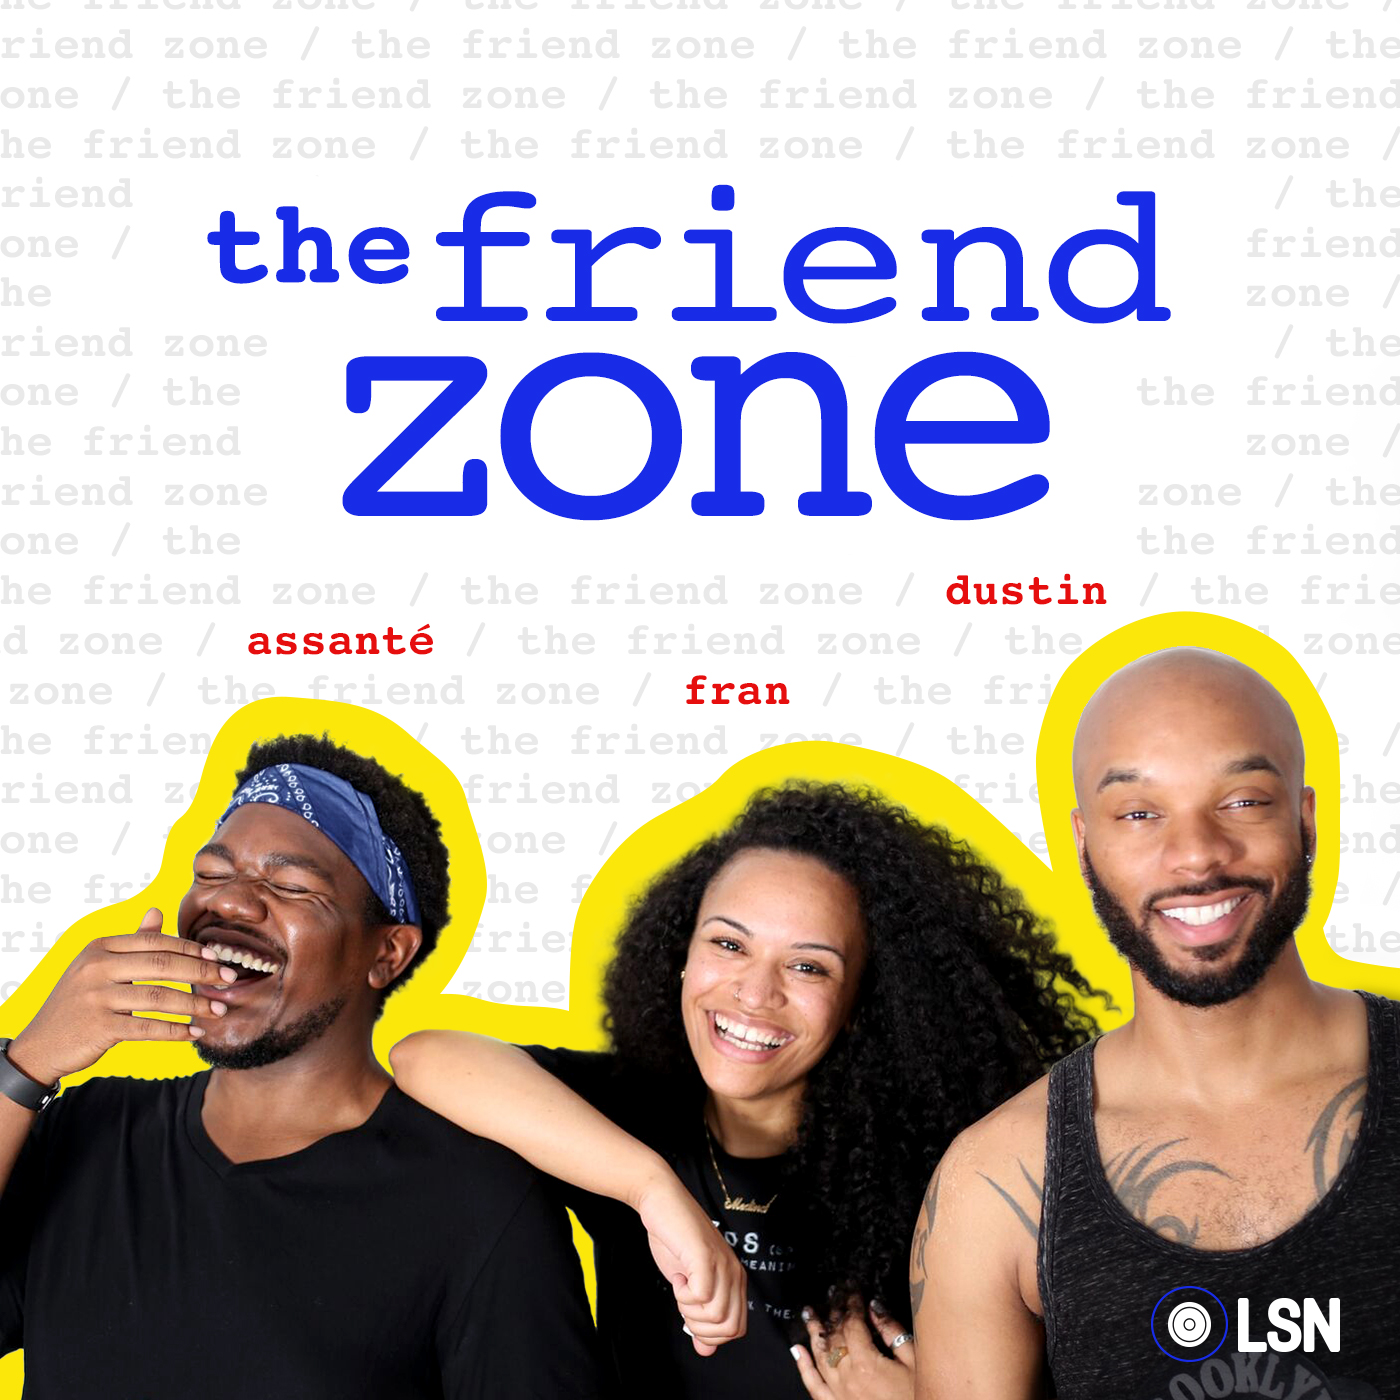 The Friend Zone podcast show image